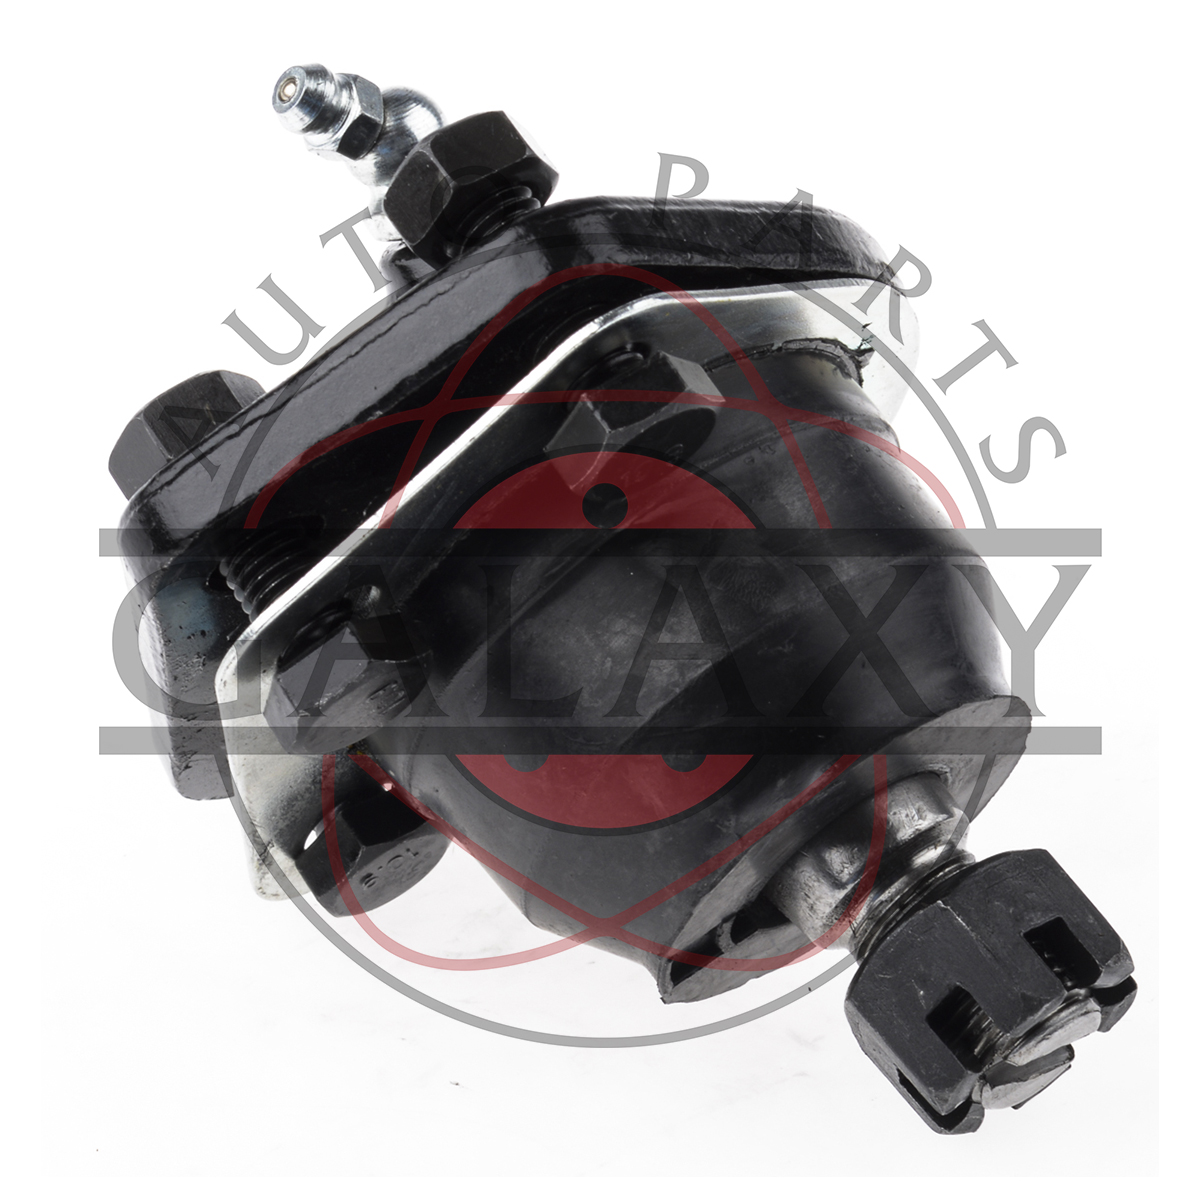 06 chevy trailblazer ball joints 2006 mazda 6 headlight wiring diagram new complete kit upper and lower for 97 05